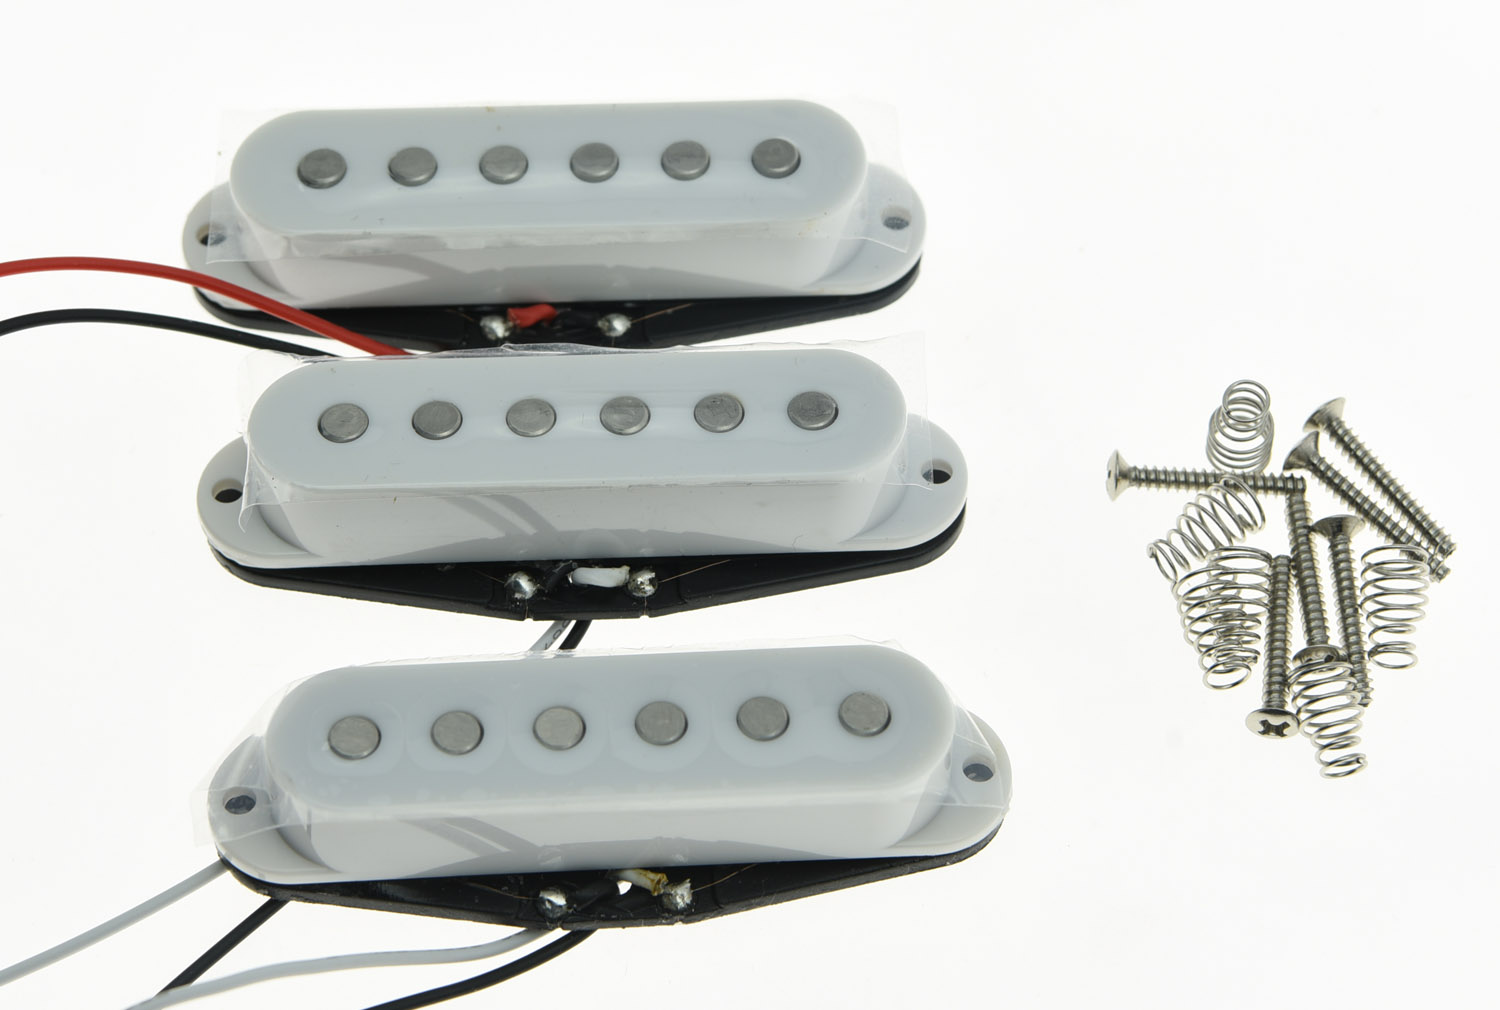 KAISH 3x N/M/B White Alnico 5 Single Coil Pickups High Output Sound Strat SSS Pickup kaish black p90 high power sound neck